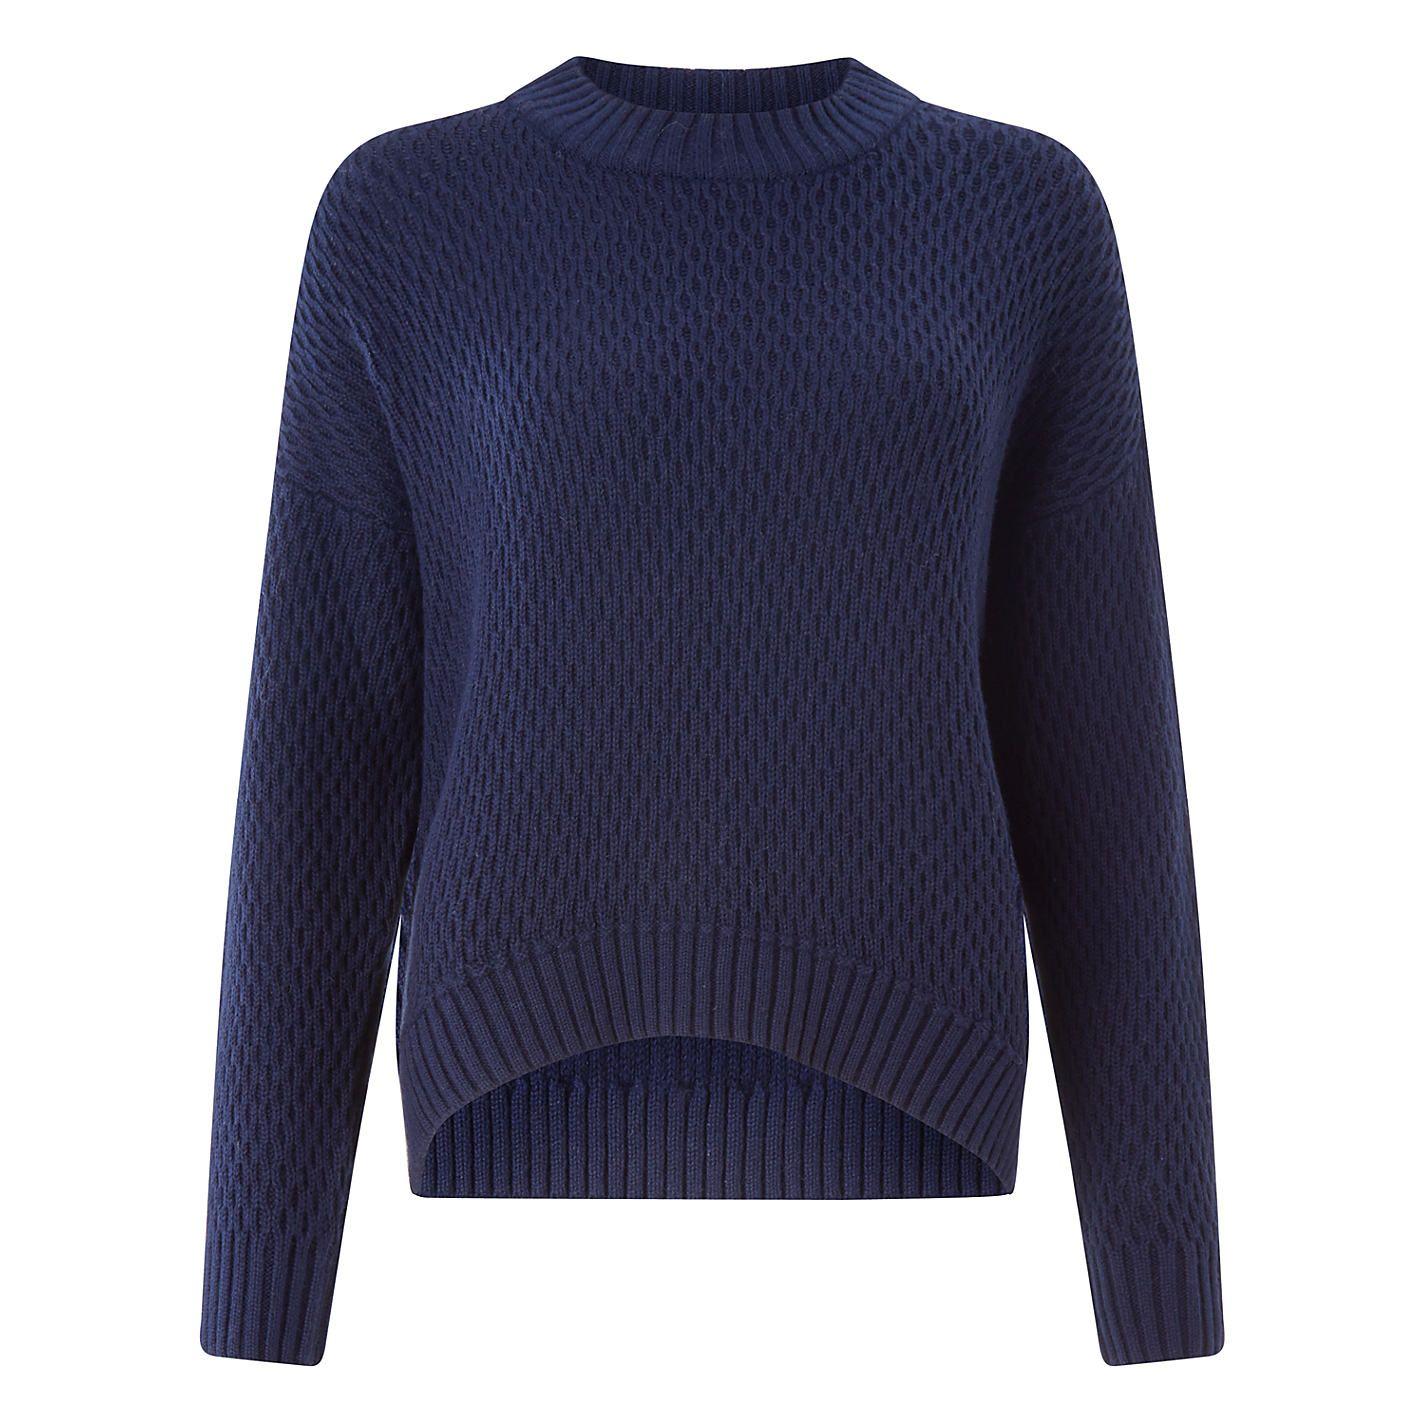 Buy Cheap Cost KNITWEAR - Cardigans John Wellington Sale Best Store To Get XQpqM6Txtq